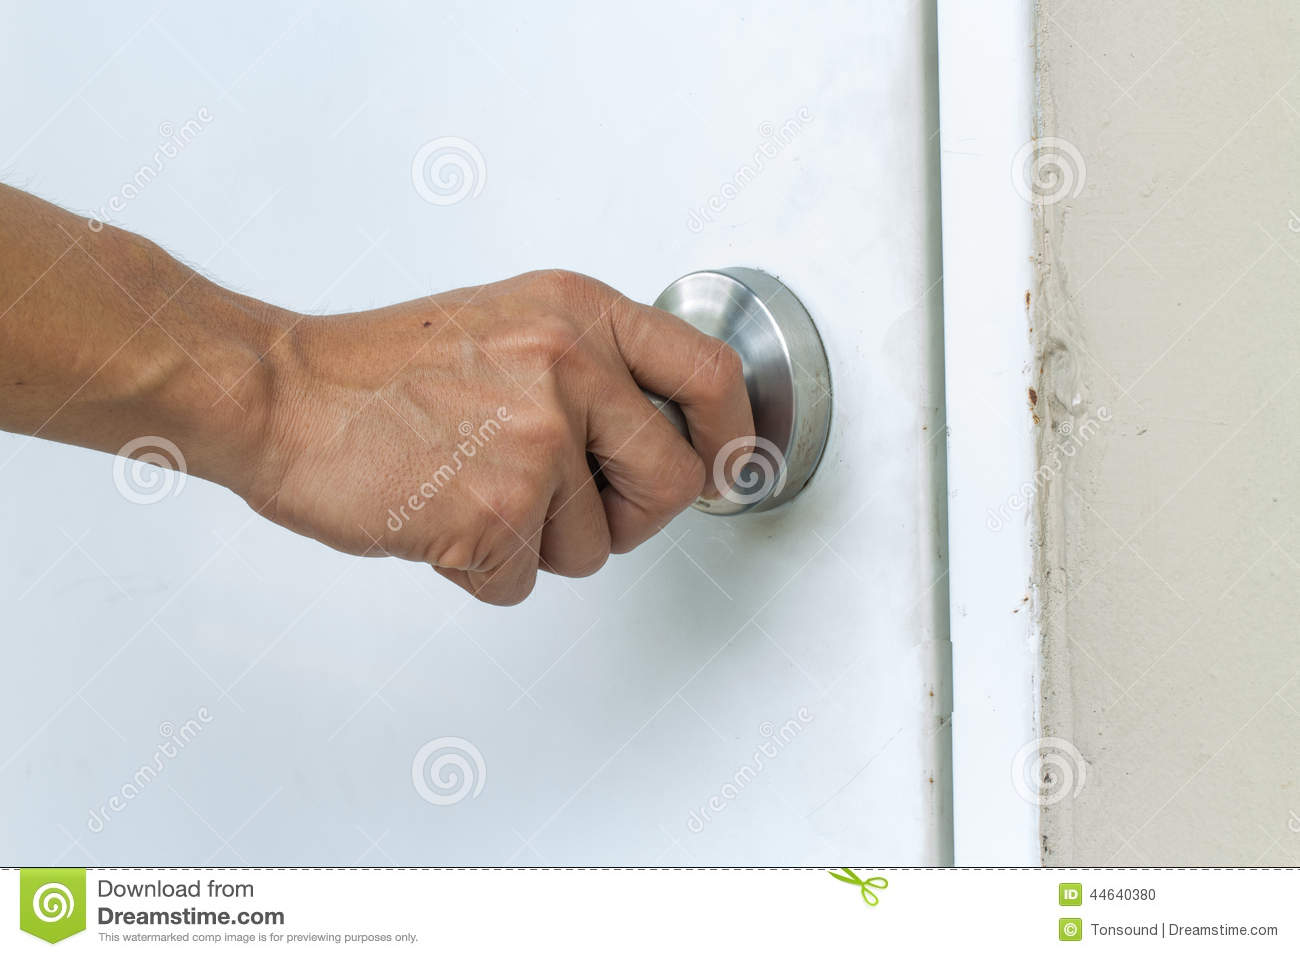 handshake door knob photo - 4